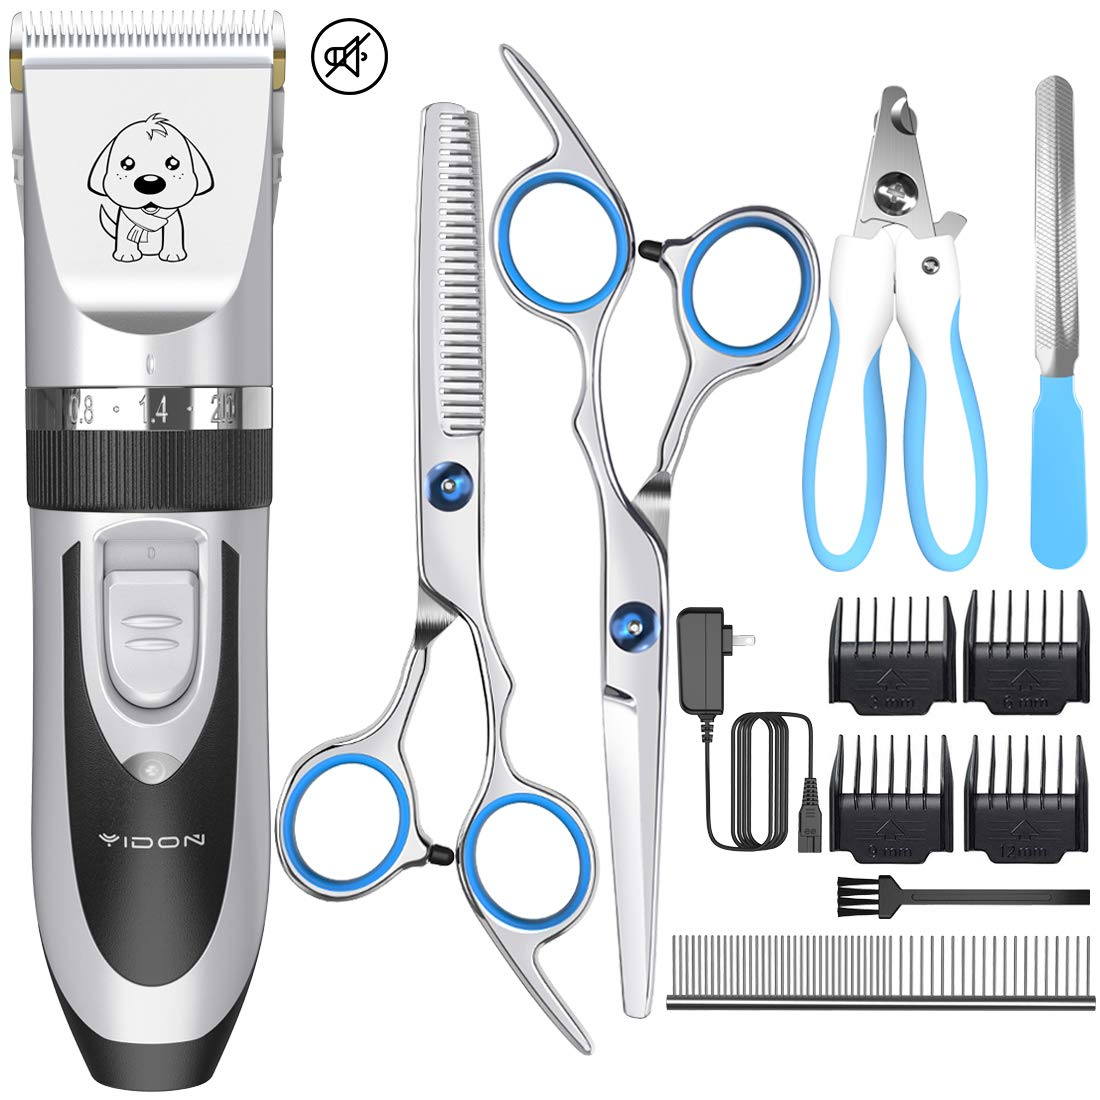 YIDON Dog Clippers, Dog Grooming kit Cordless Adjustable Pet Clippers Dog Hair Trimmer Rechargeable Dog Shears Pet Grooming Professional Hair Clippers Low Noise for Small Large Dogs,Cats,All Pets by YIDON